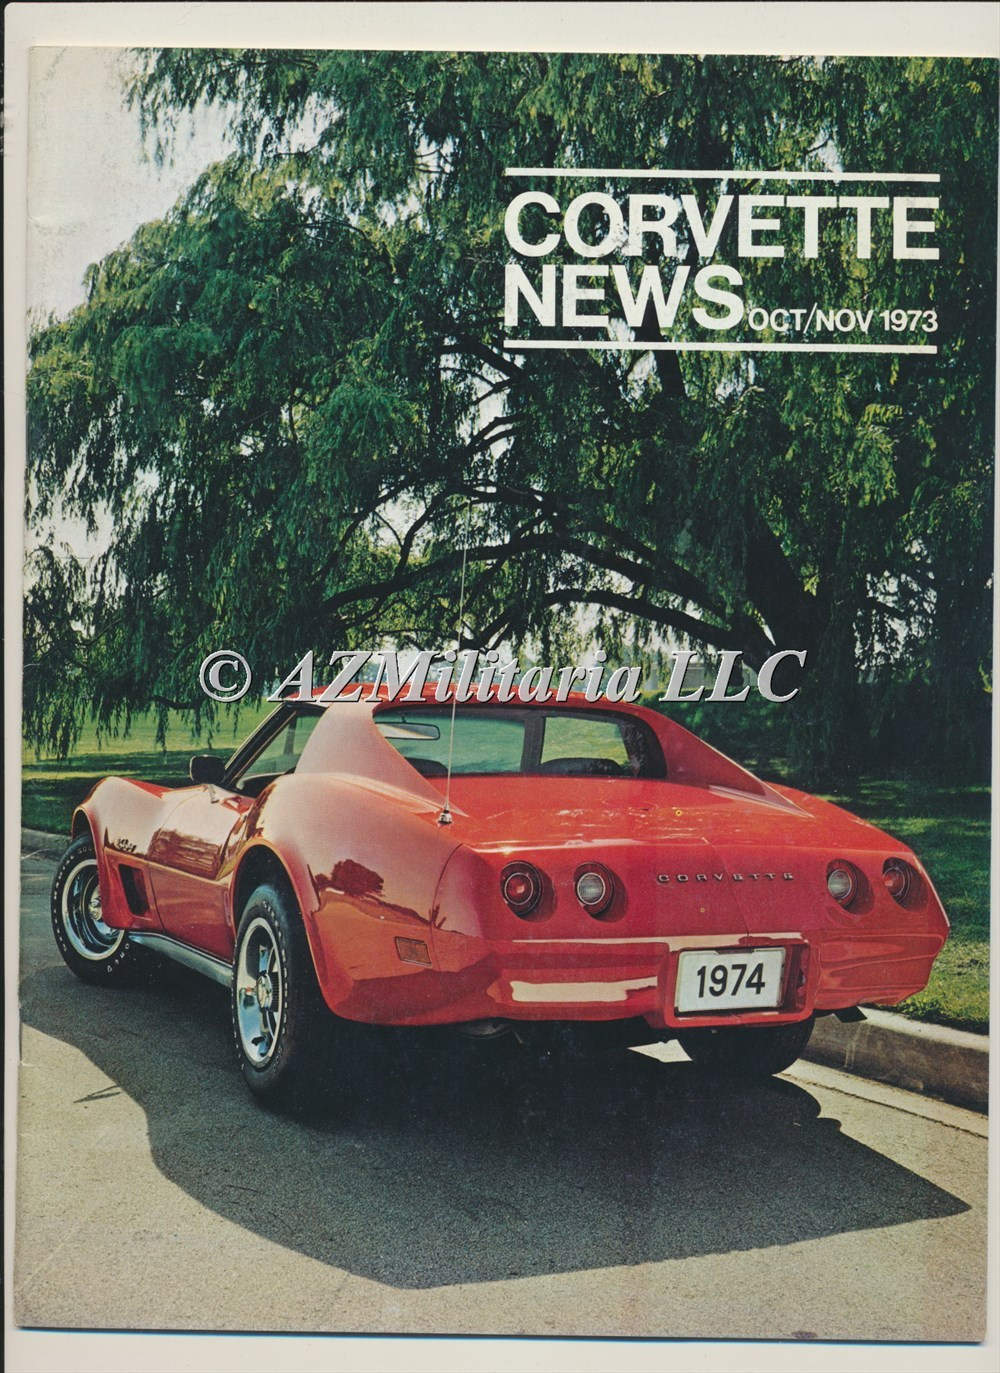 Primary image for Corvette News Oct/Nov 1973